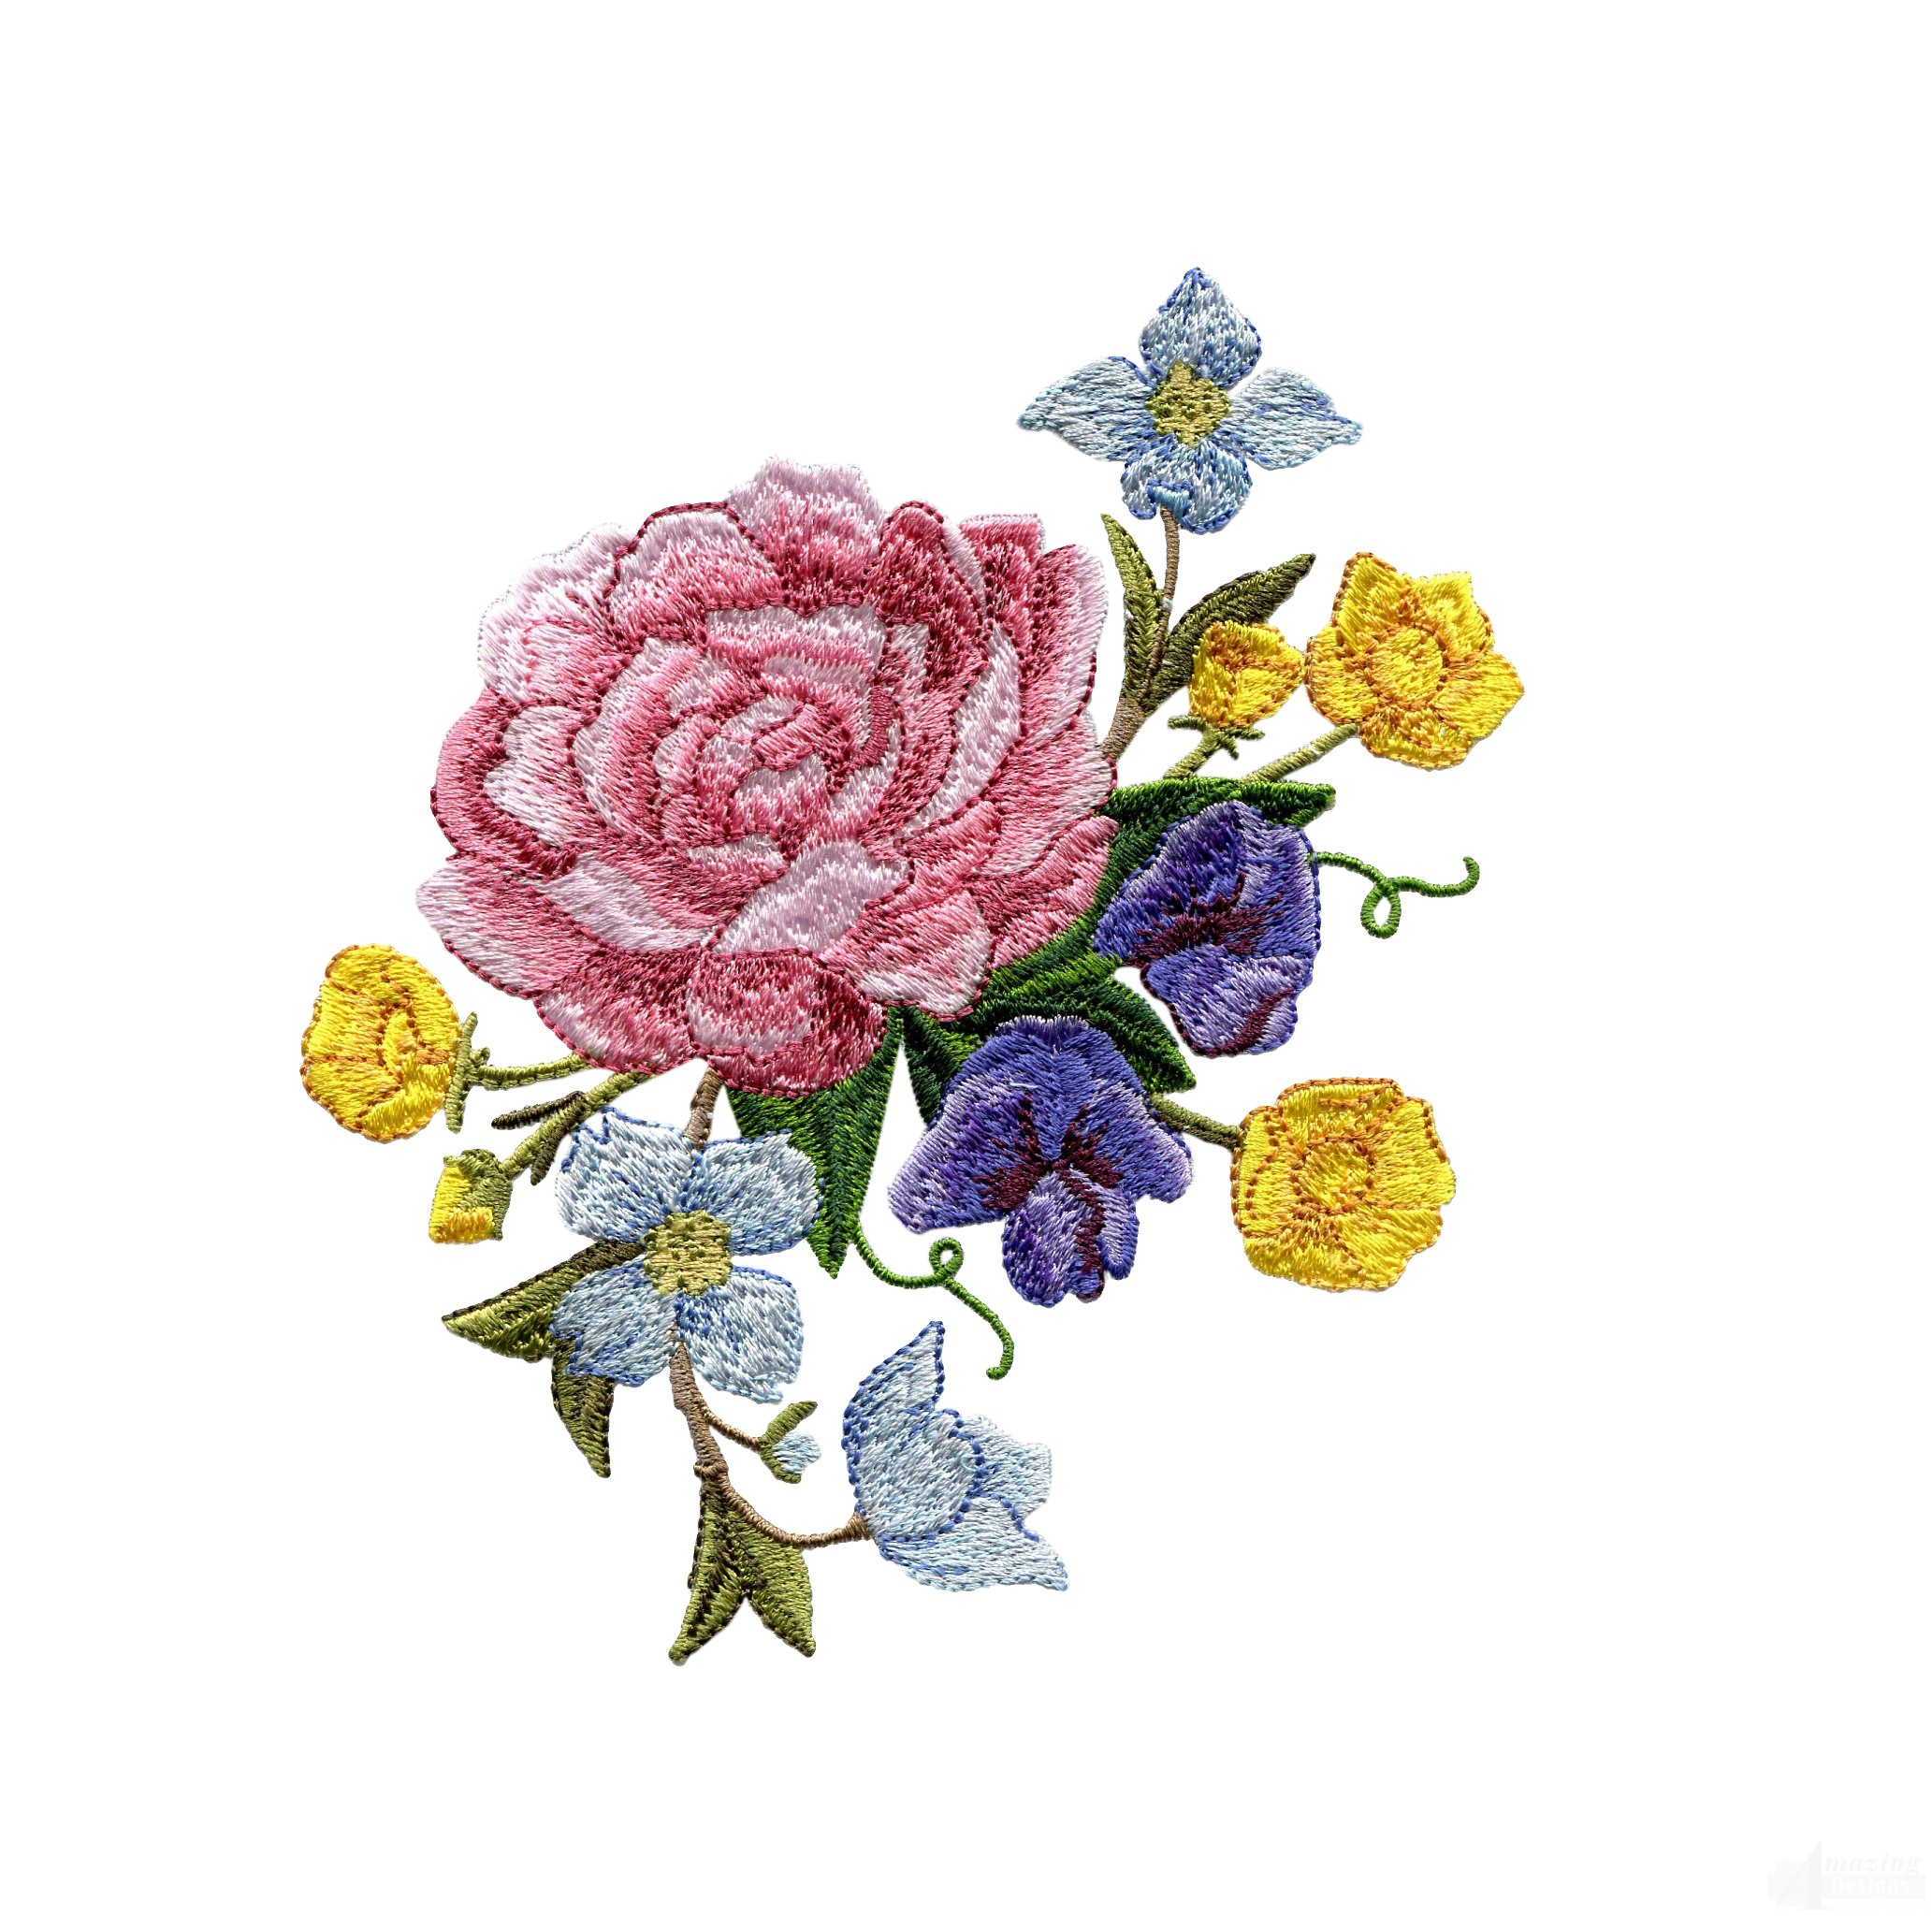 Stand Alone Embroidery Designs : Amazing designs size it monogramming software aprijer